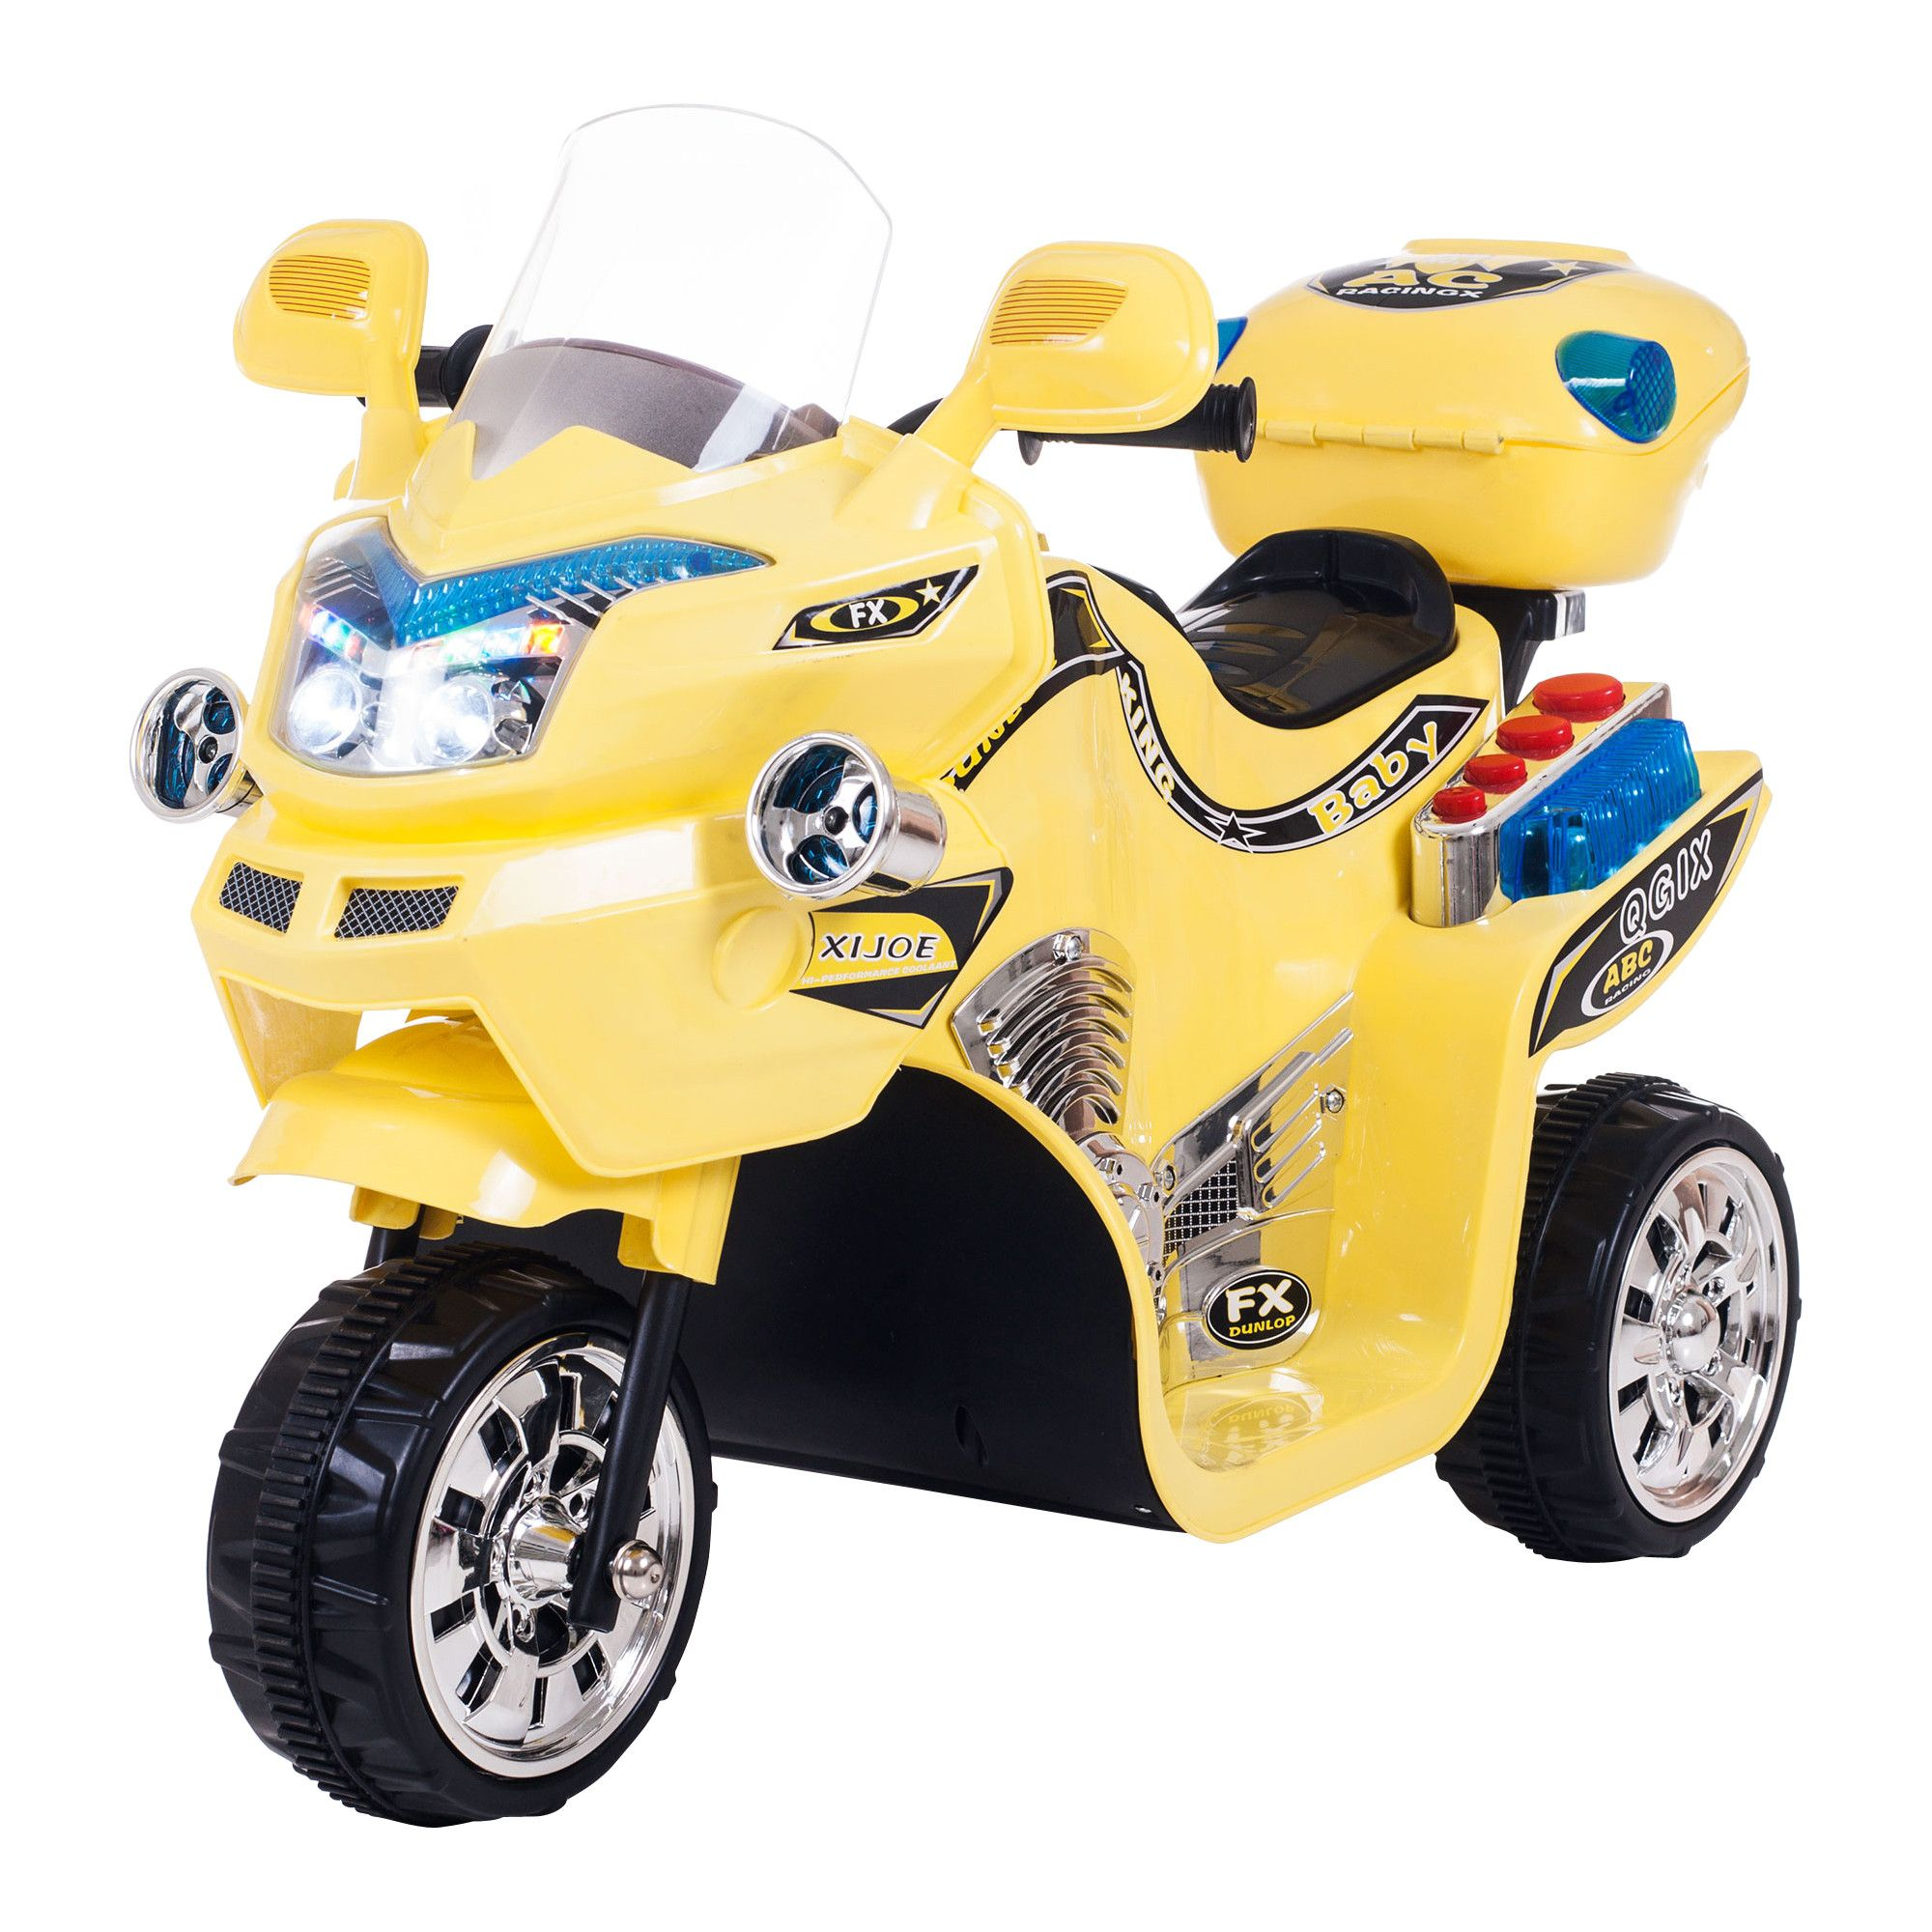 Toys images for boys  FX Wheel V Battery Powered Motorcycle  Products  Pinterest  Products